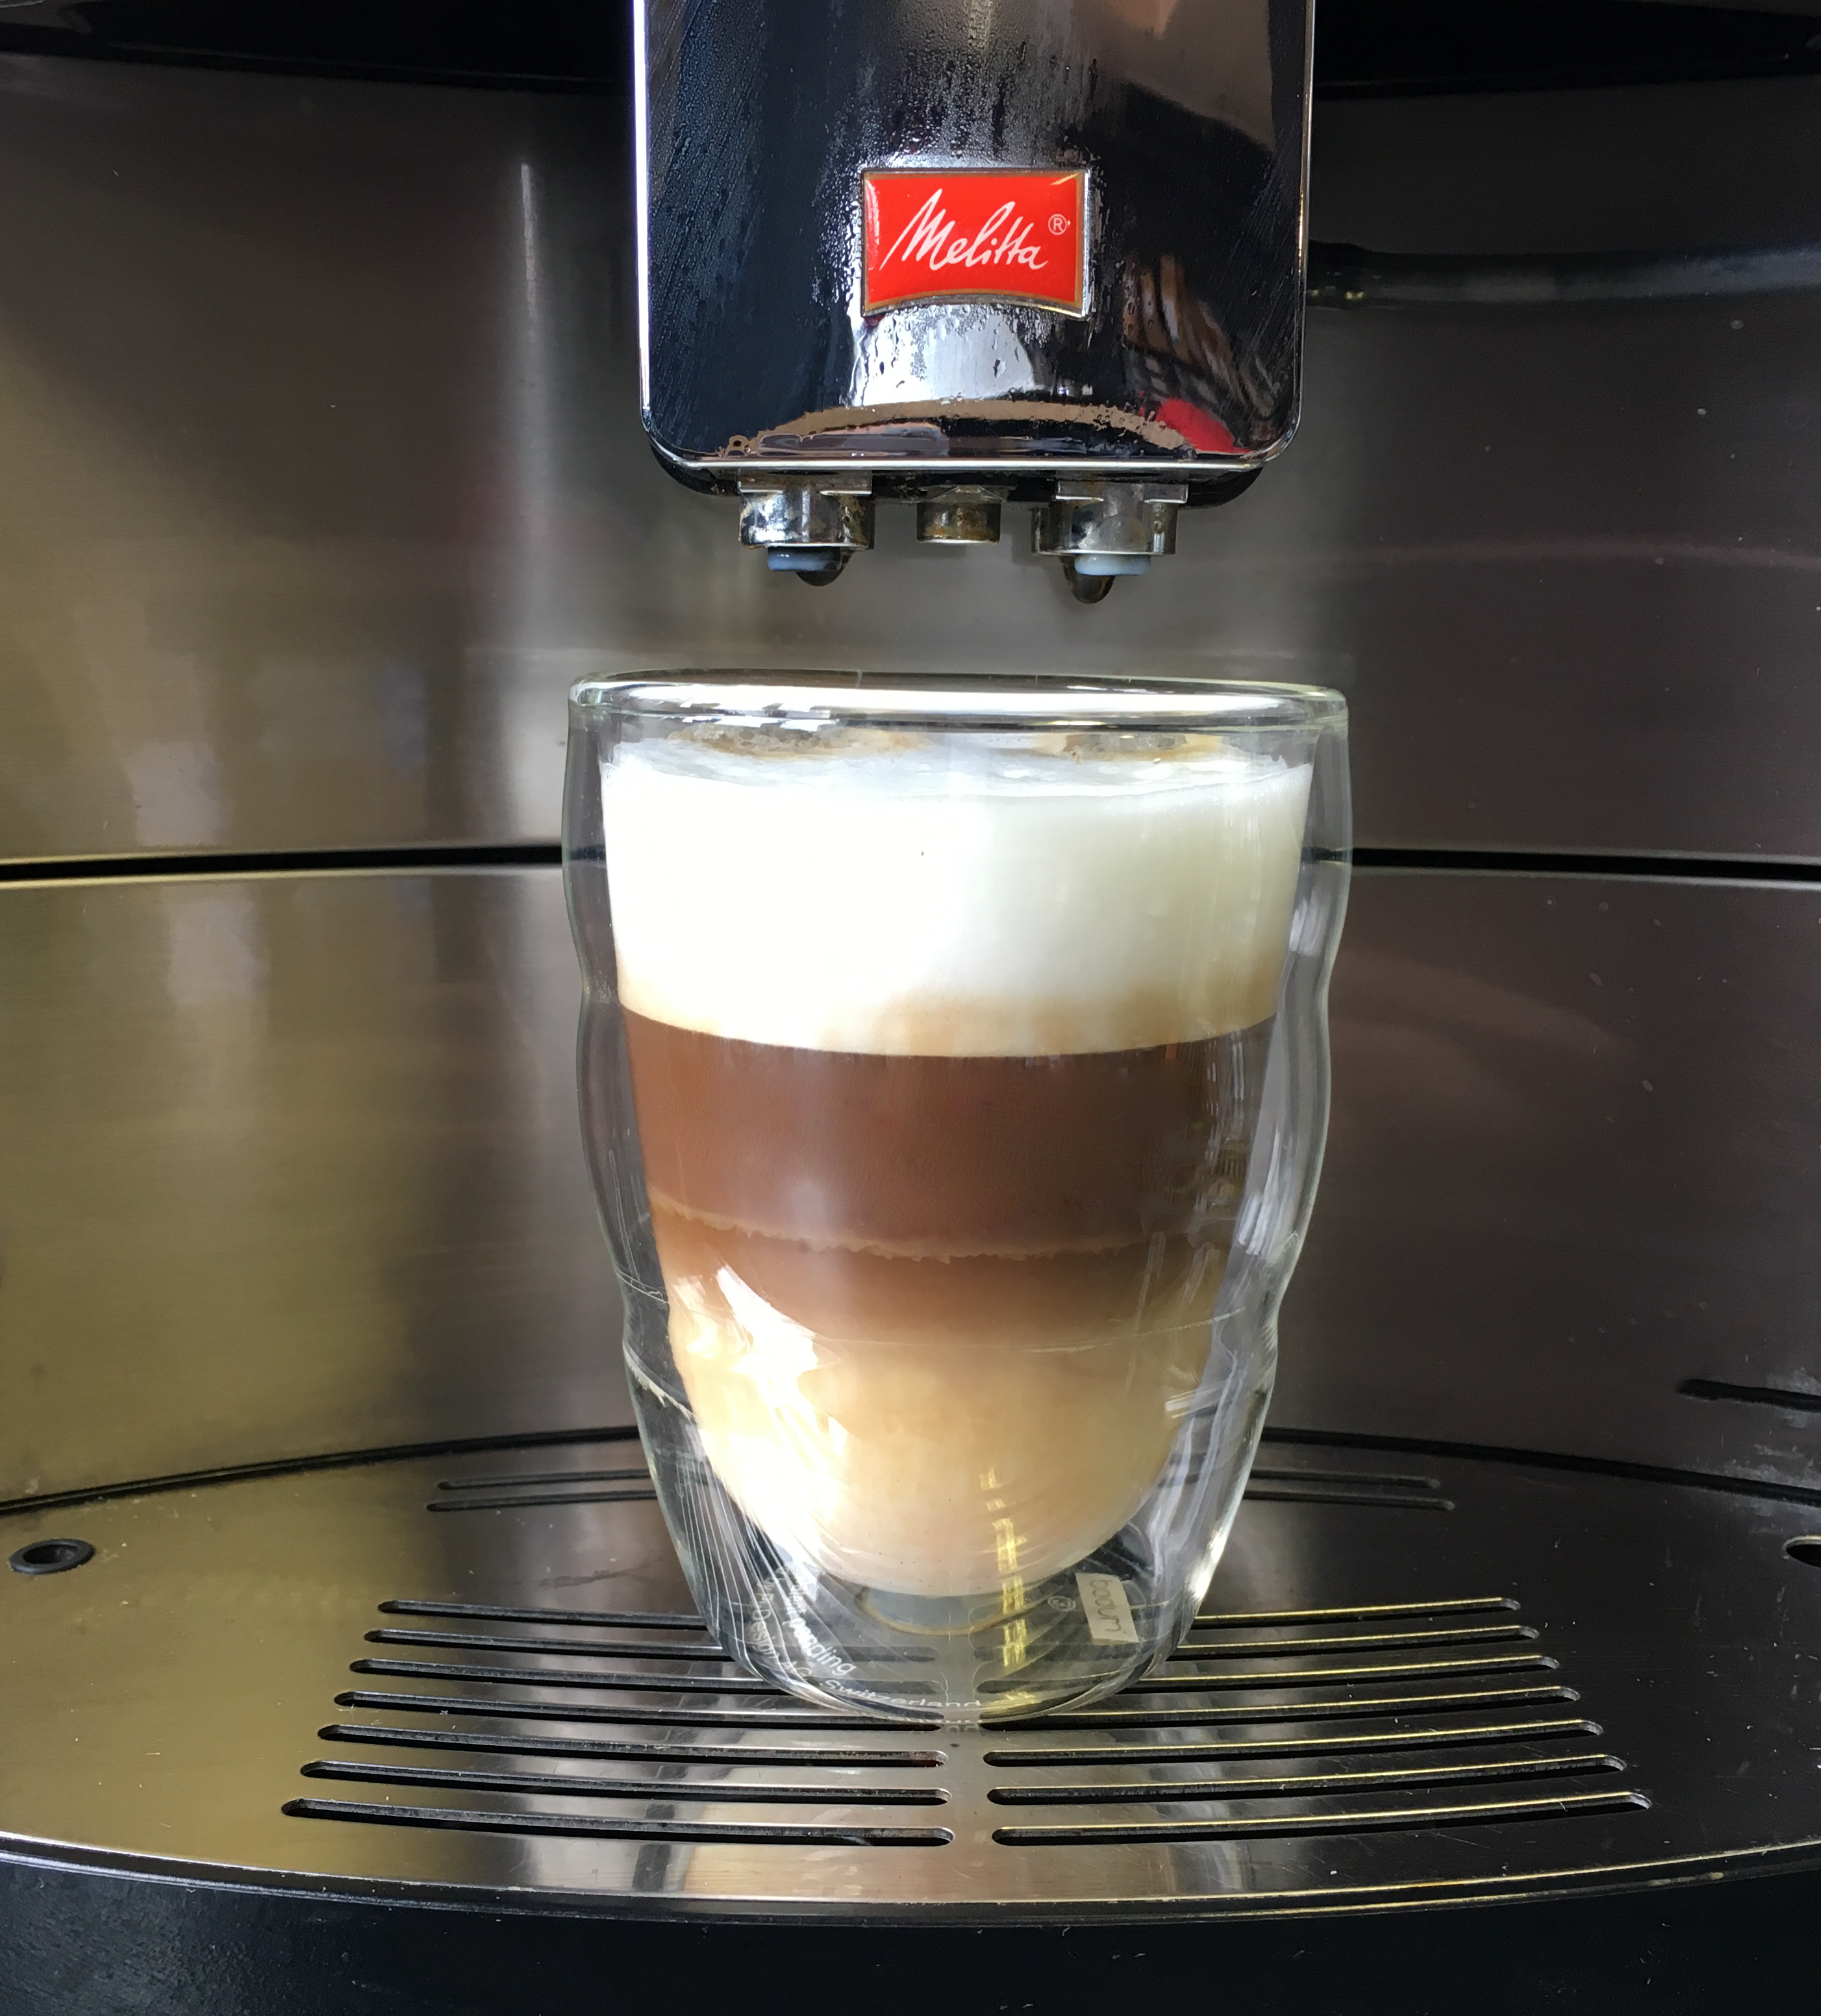 If You Are A Coffee Enthusiast And Looking For An Alternative To Time Consuming Manual Espresso Makers Melitta Caffeo Barista Ts Is The Answer It Does Everyth ม ร ปภาพ